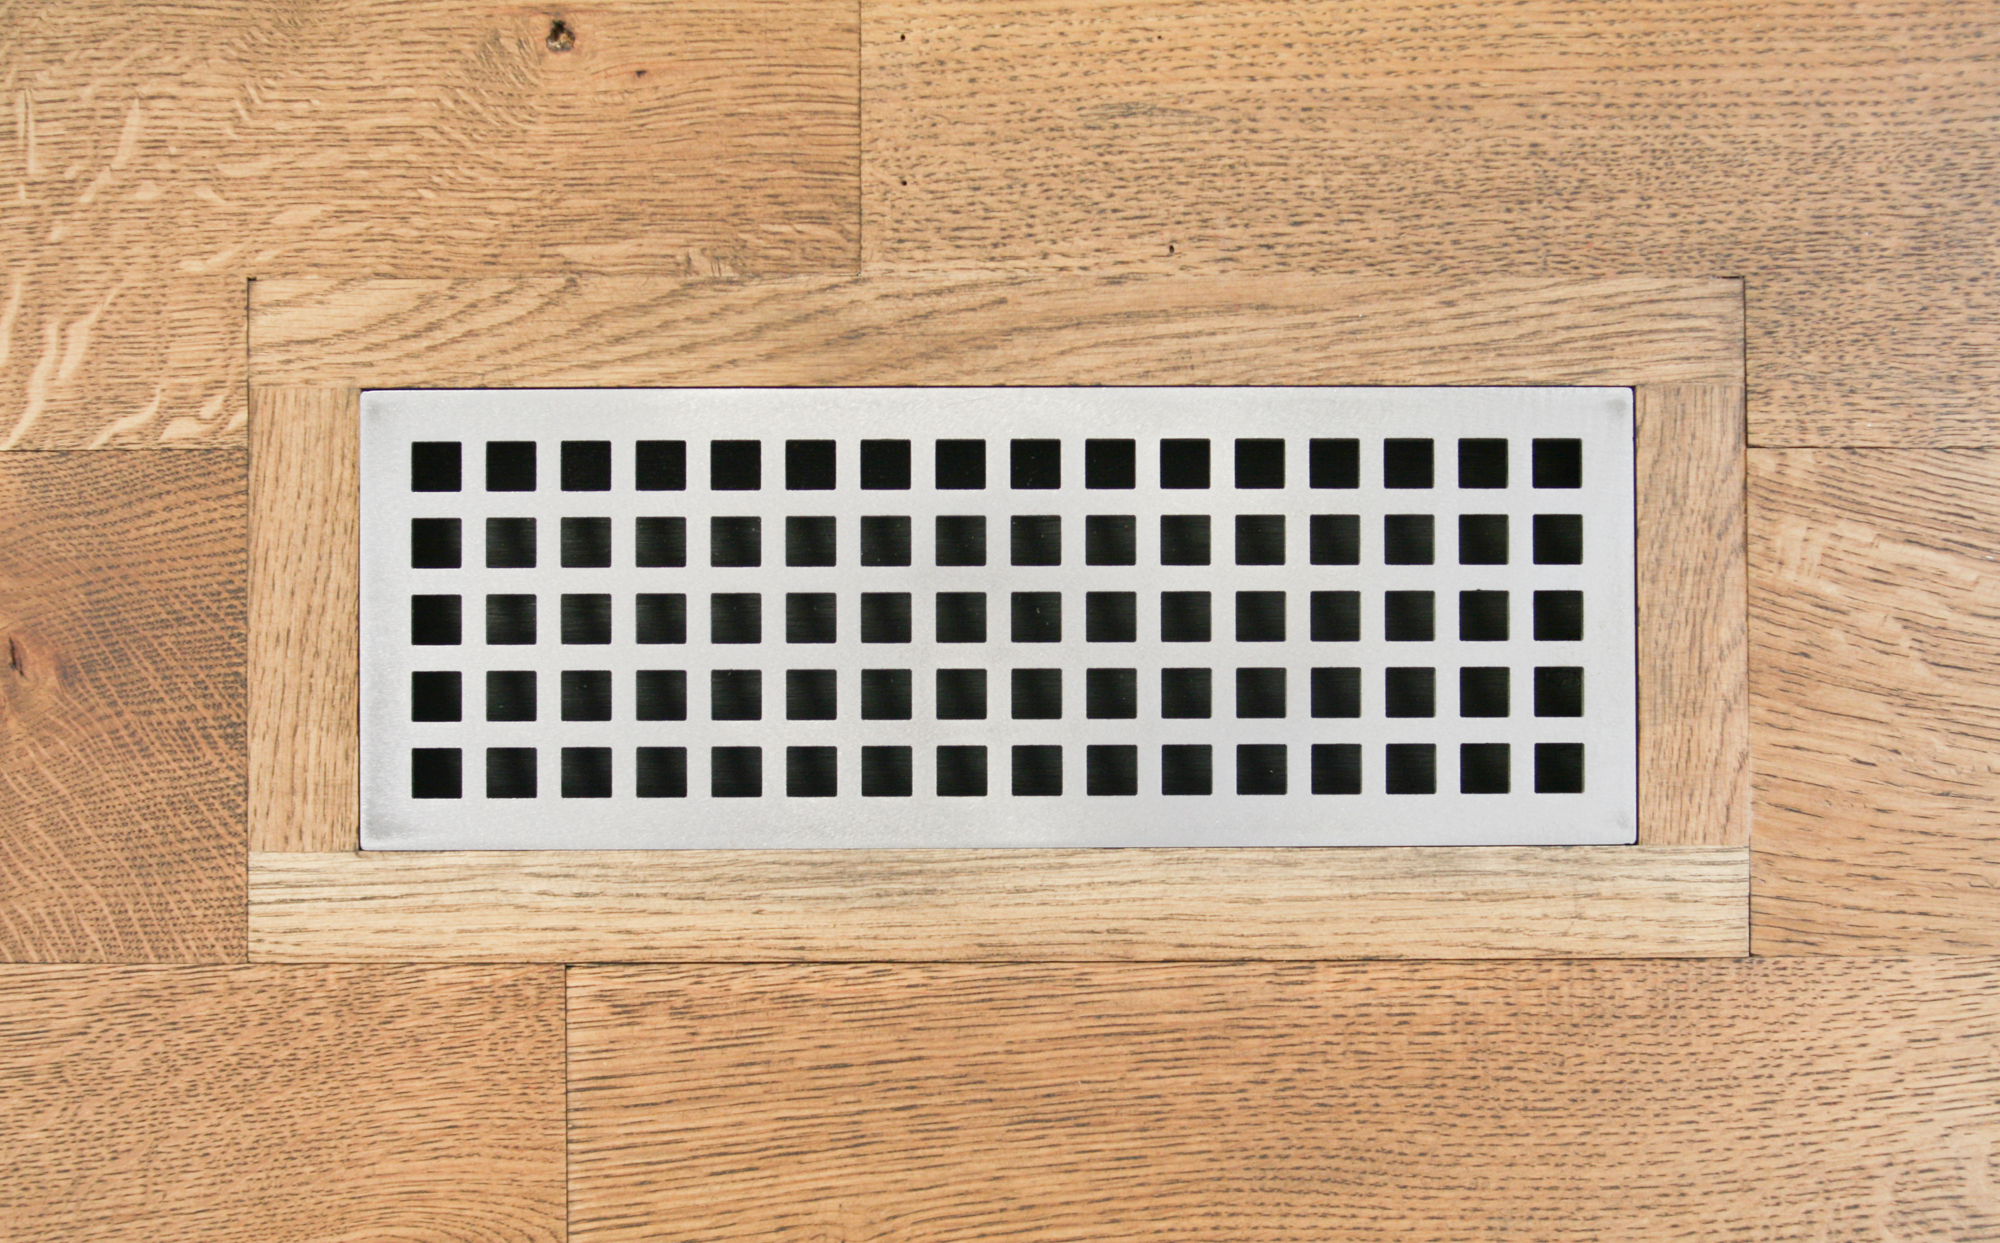 Eternal Grid Vent Register Flush Mount Carbon Steel